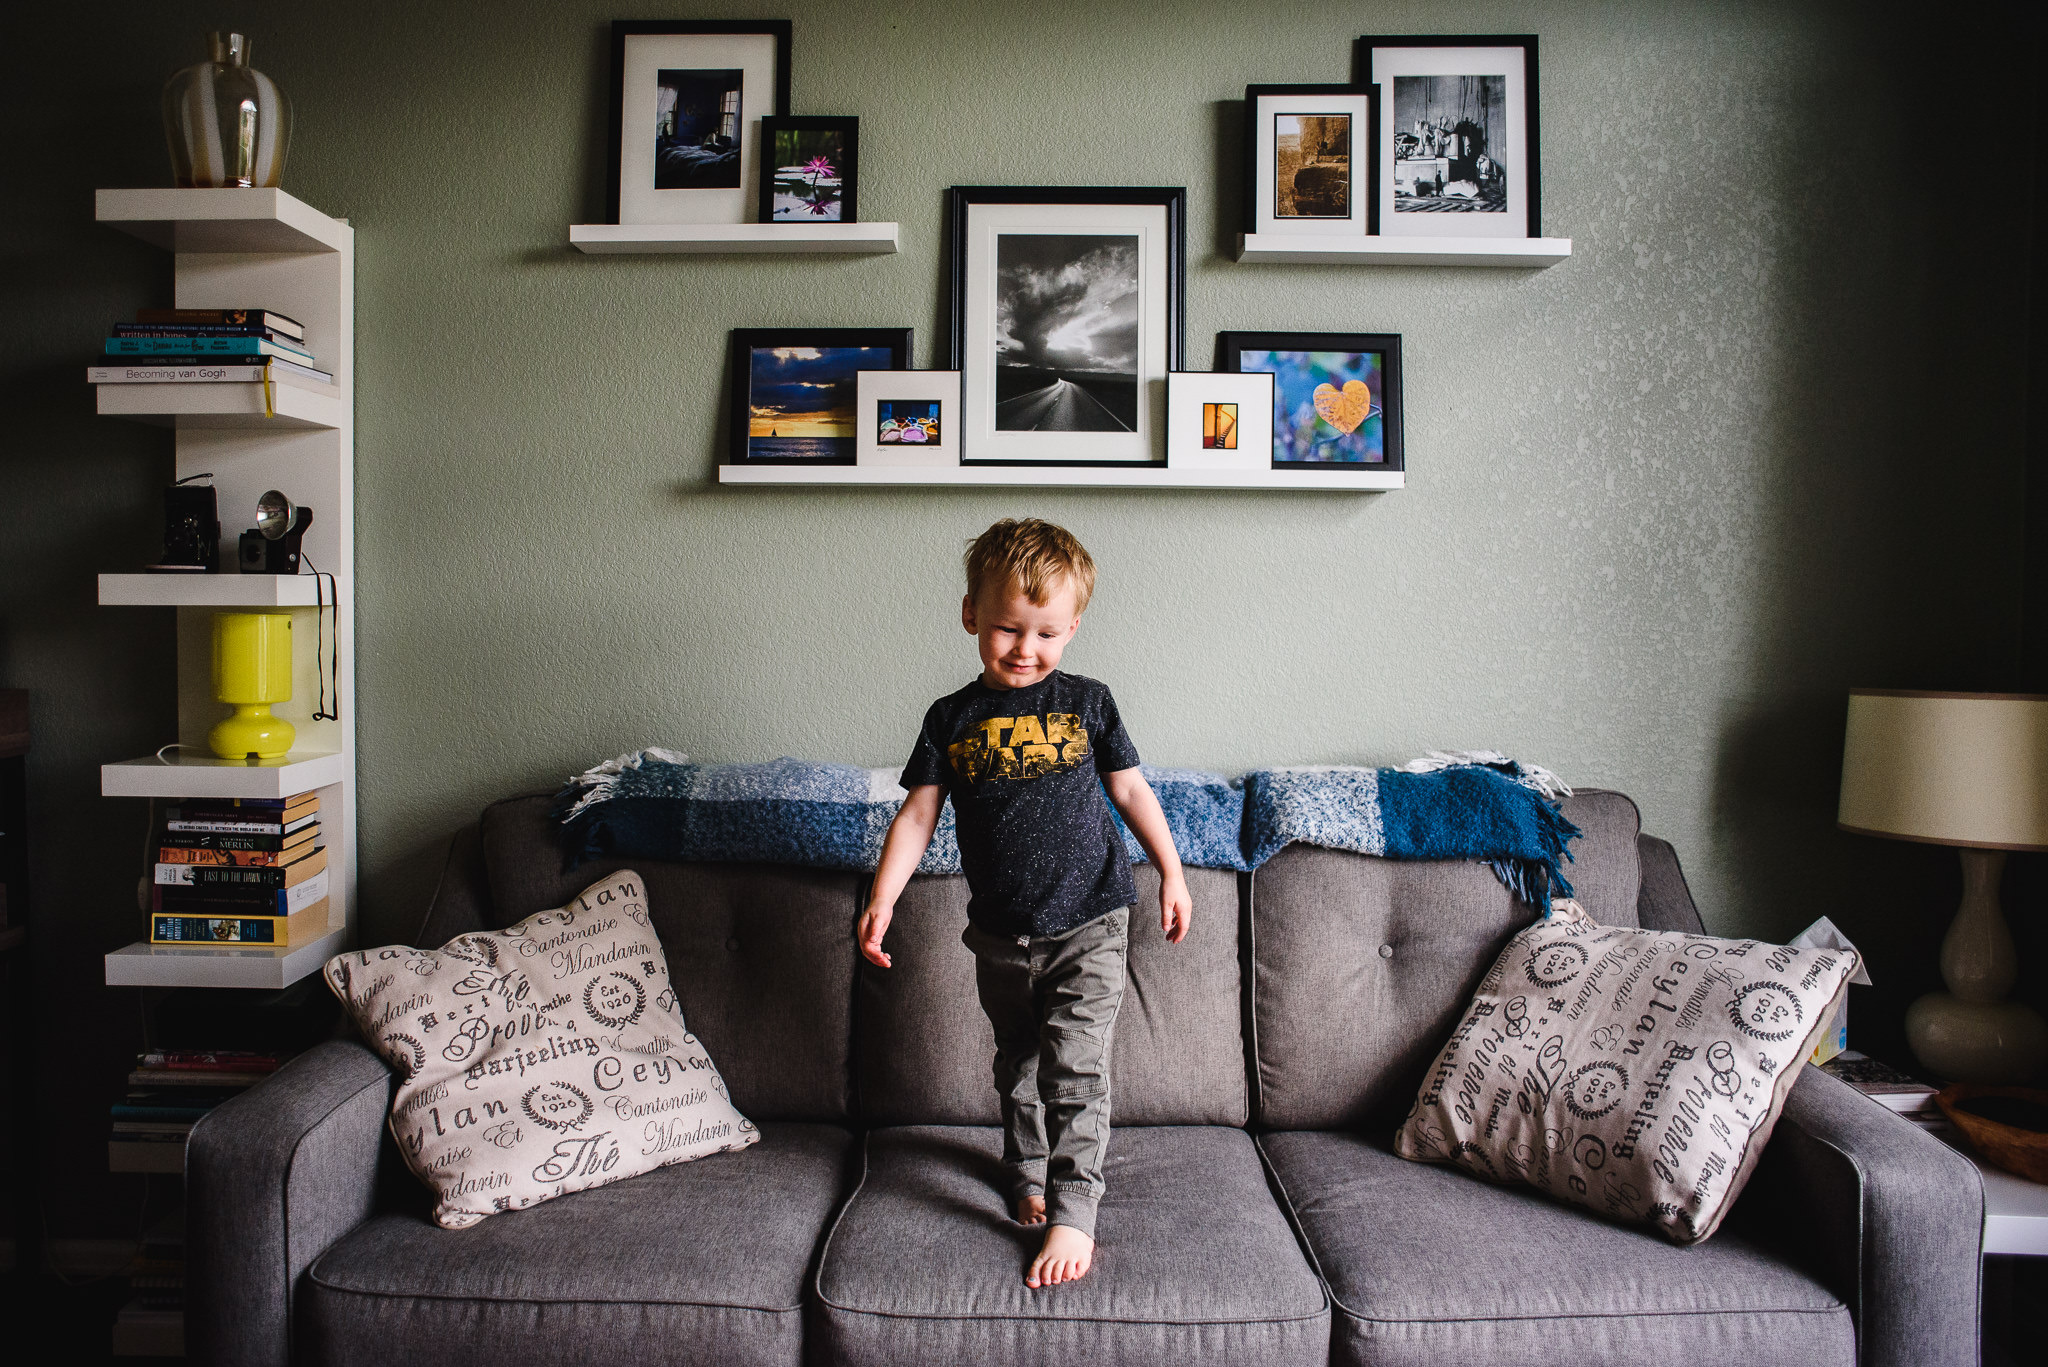 Kid jumps on couch during candid family photos